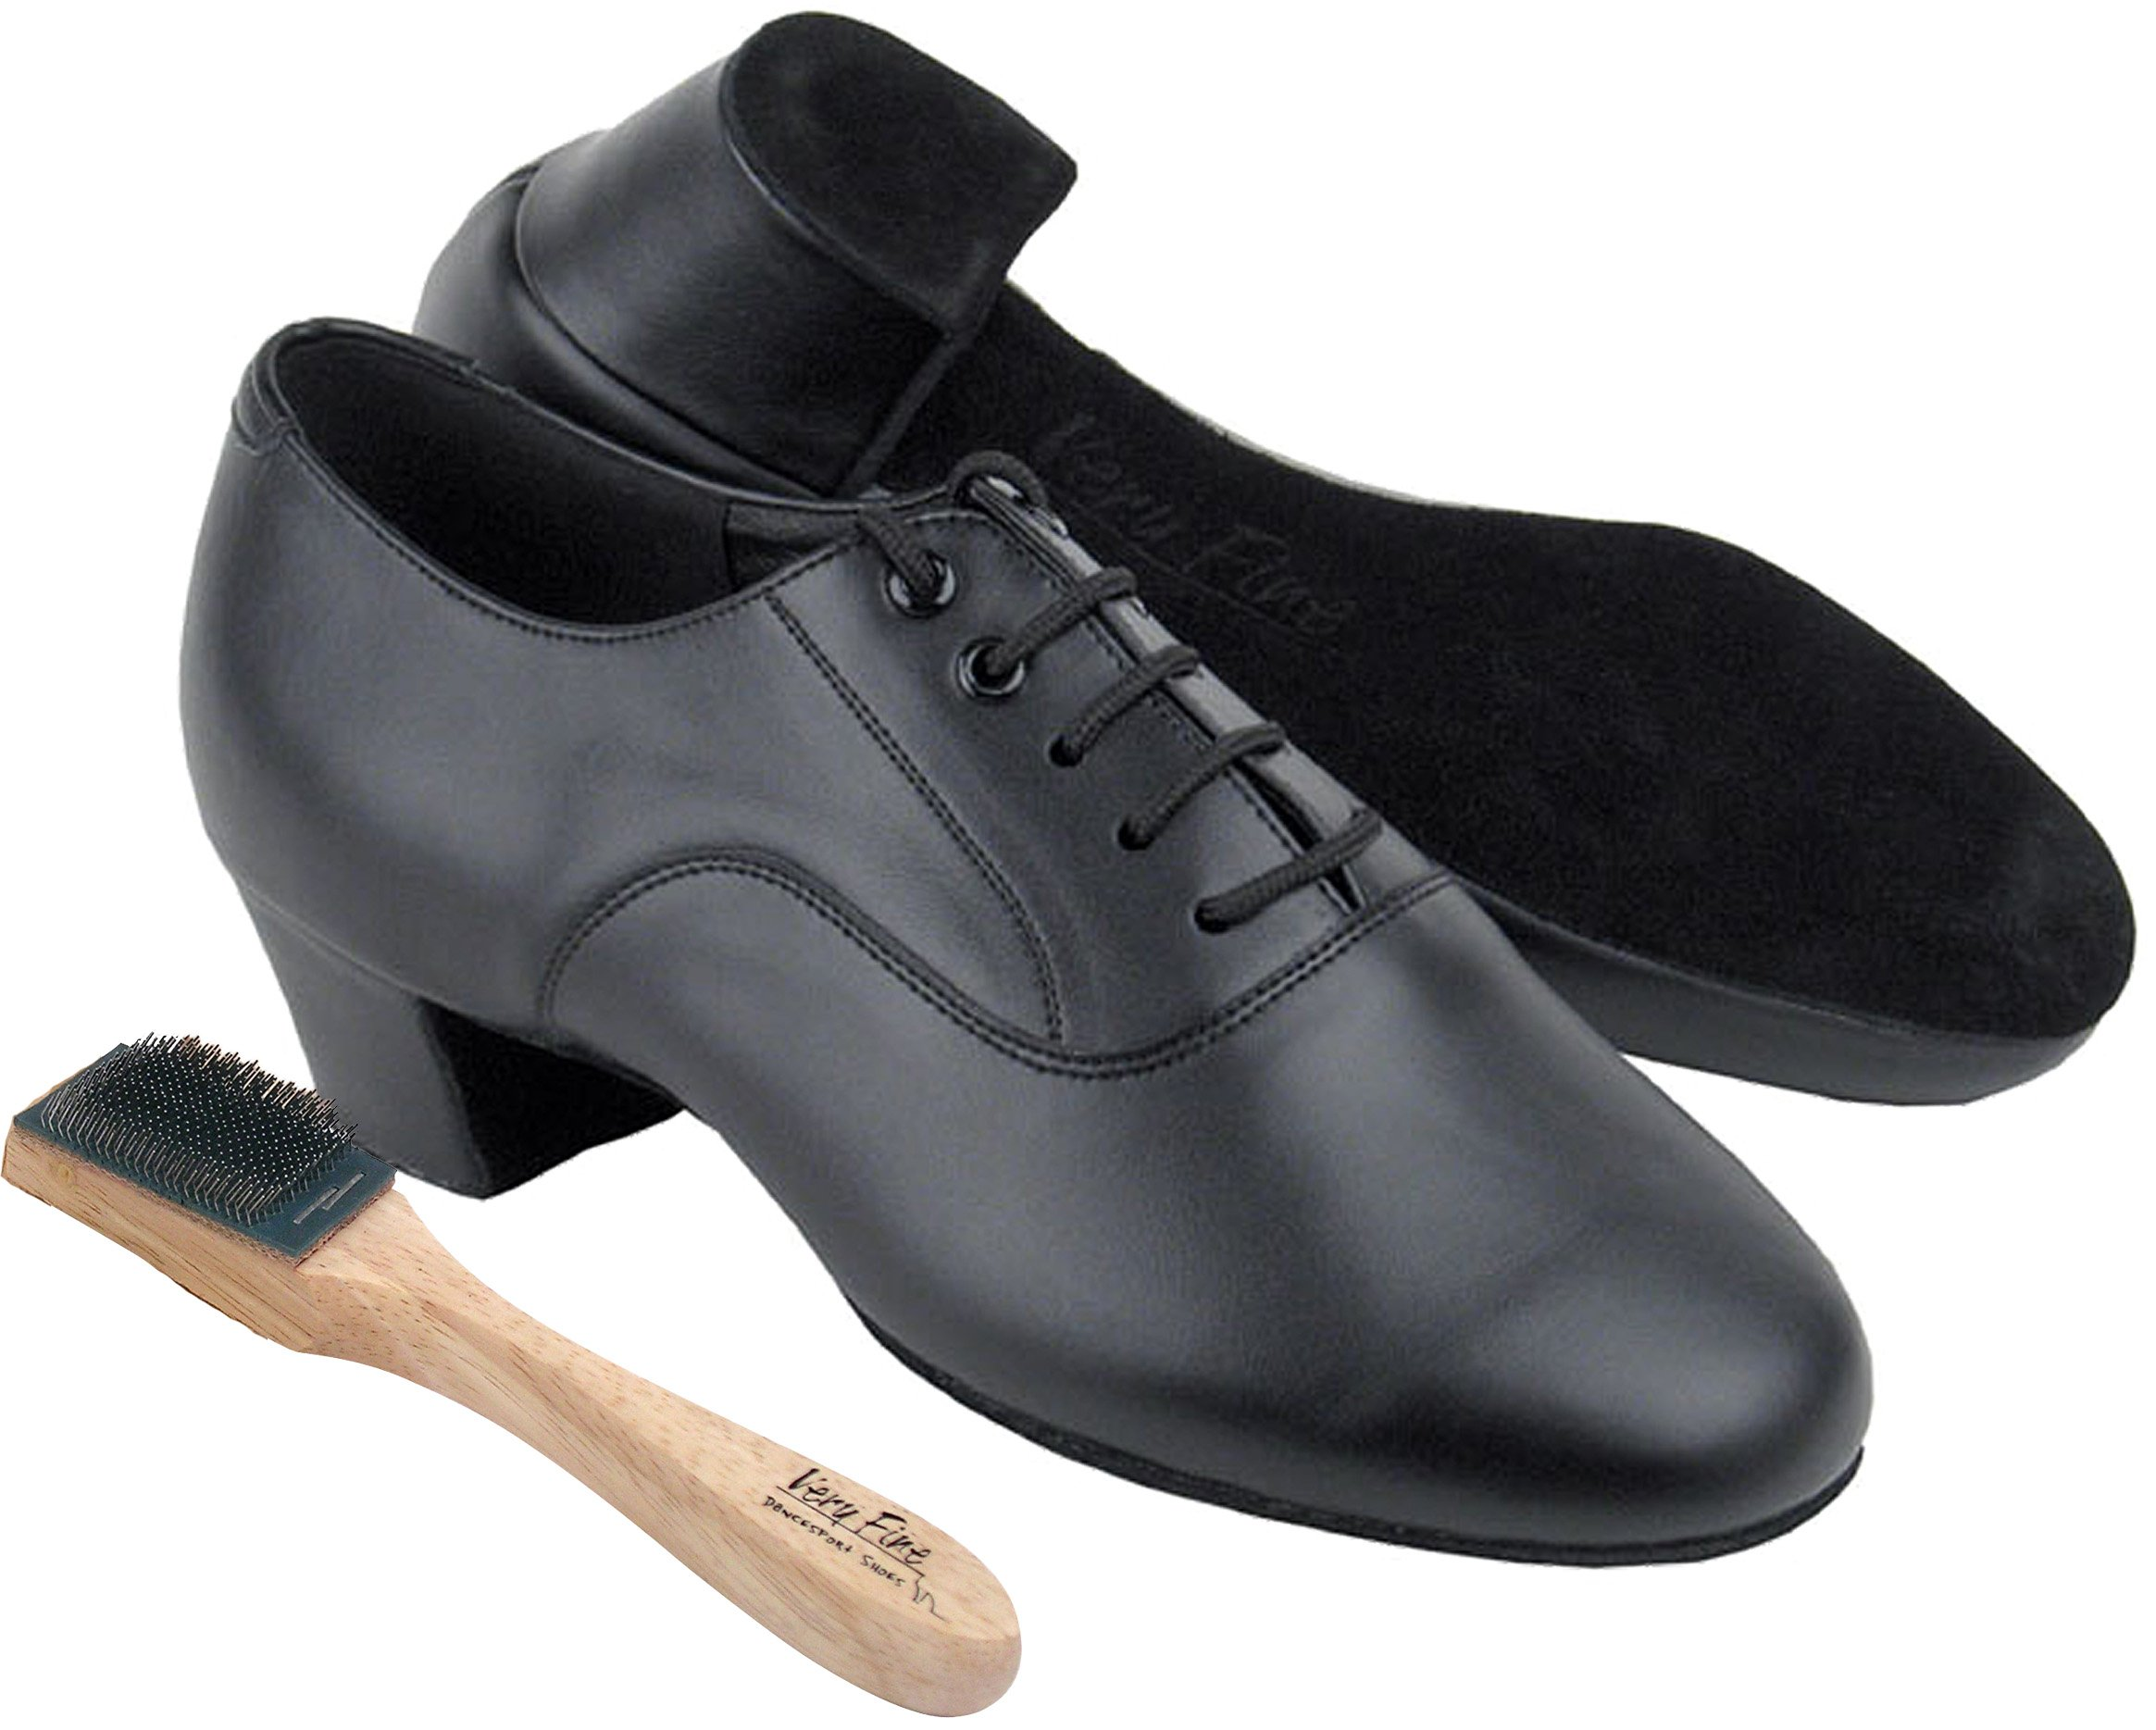 Very Fine Men's Salsa Ballroom Tango Latin Dance Shoes Style C915108 Bundle with Dance Shoe Wire Brush, Black Leather 10 M US Heel 1.5 Inch